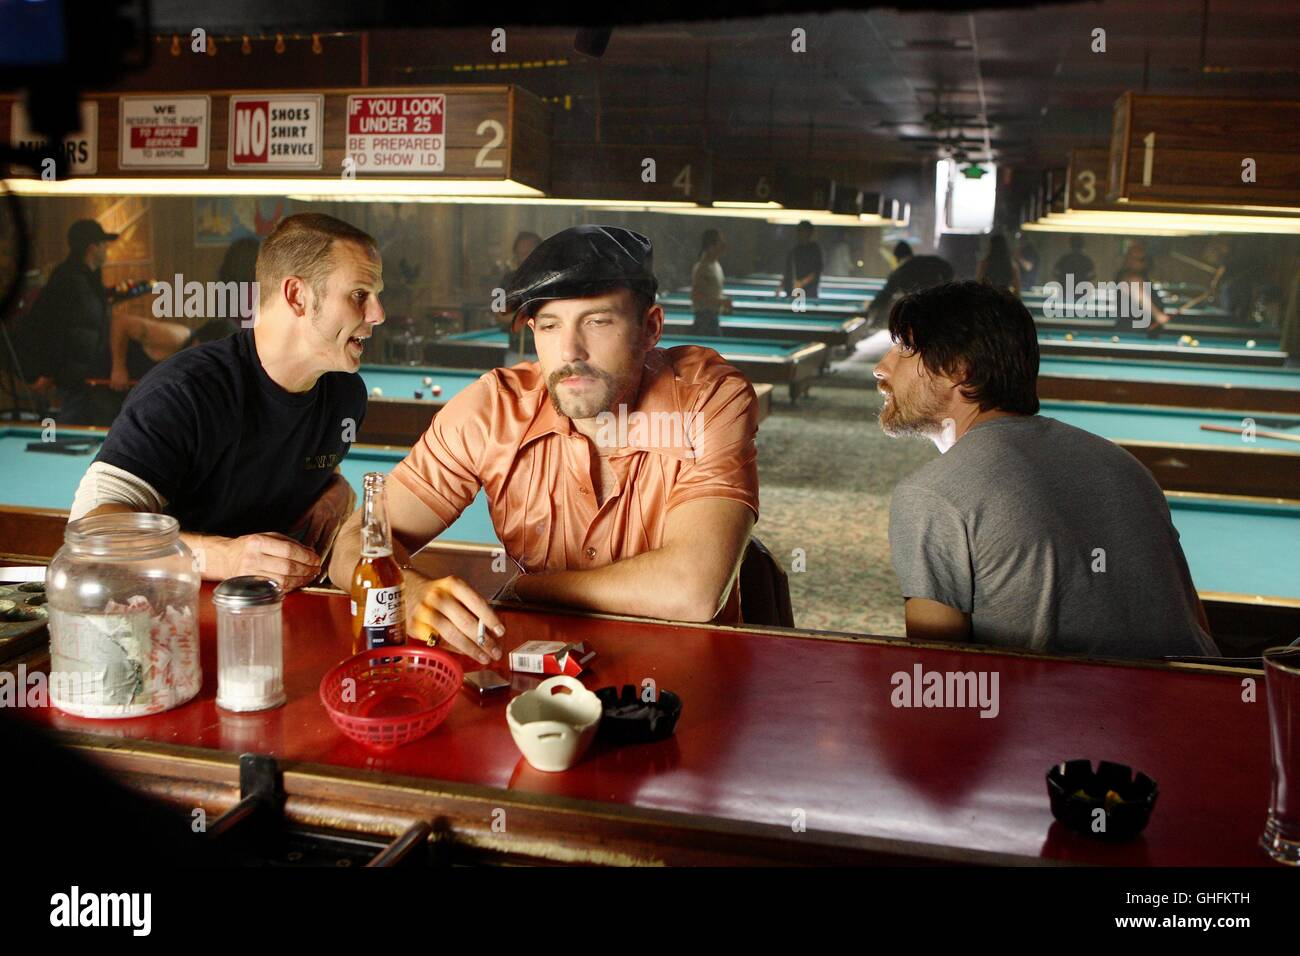 SMOKIN' ACES Smokin' Aces USA/GB/France 2007 Smokin' Aces / PETER BERG as 'Pistol' Pete Deeks, - Stock Image